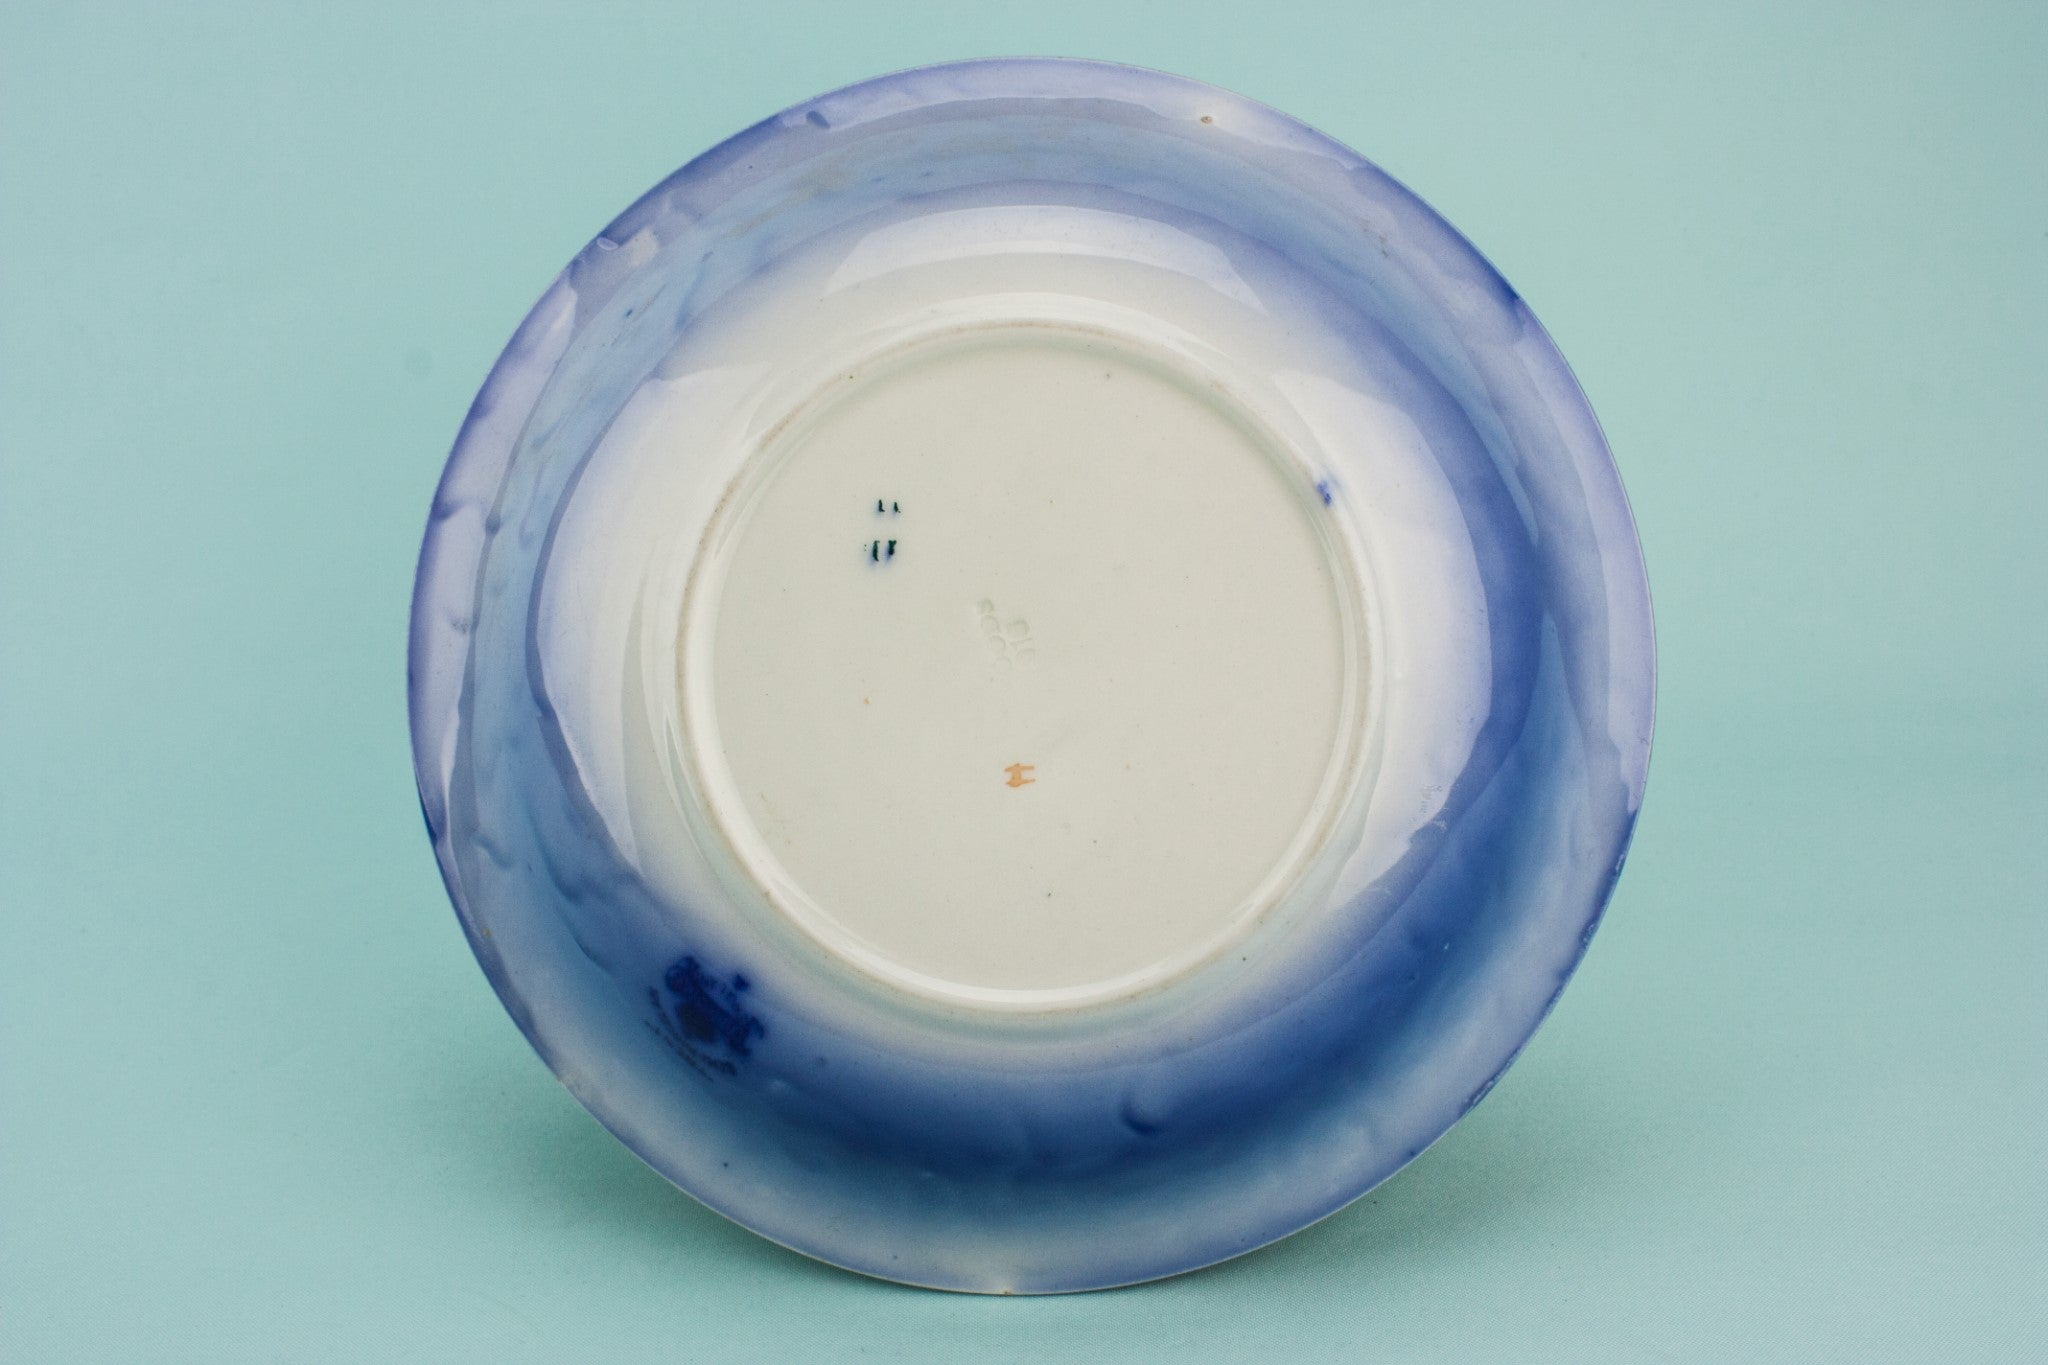 Flow blue serving dish